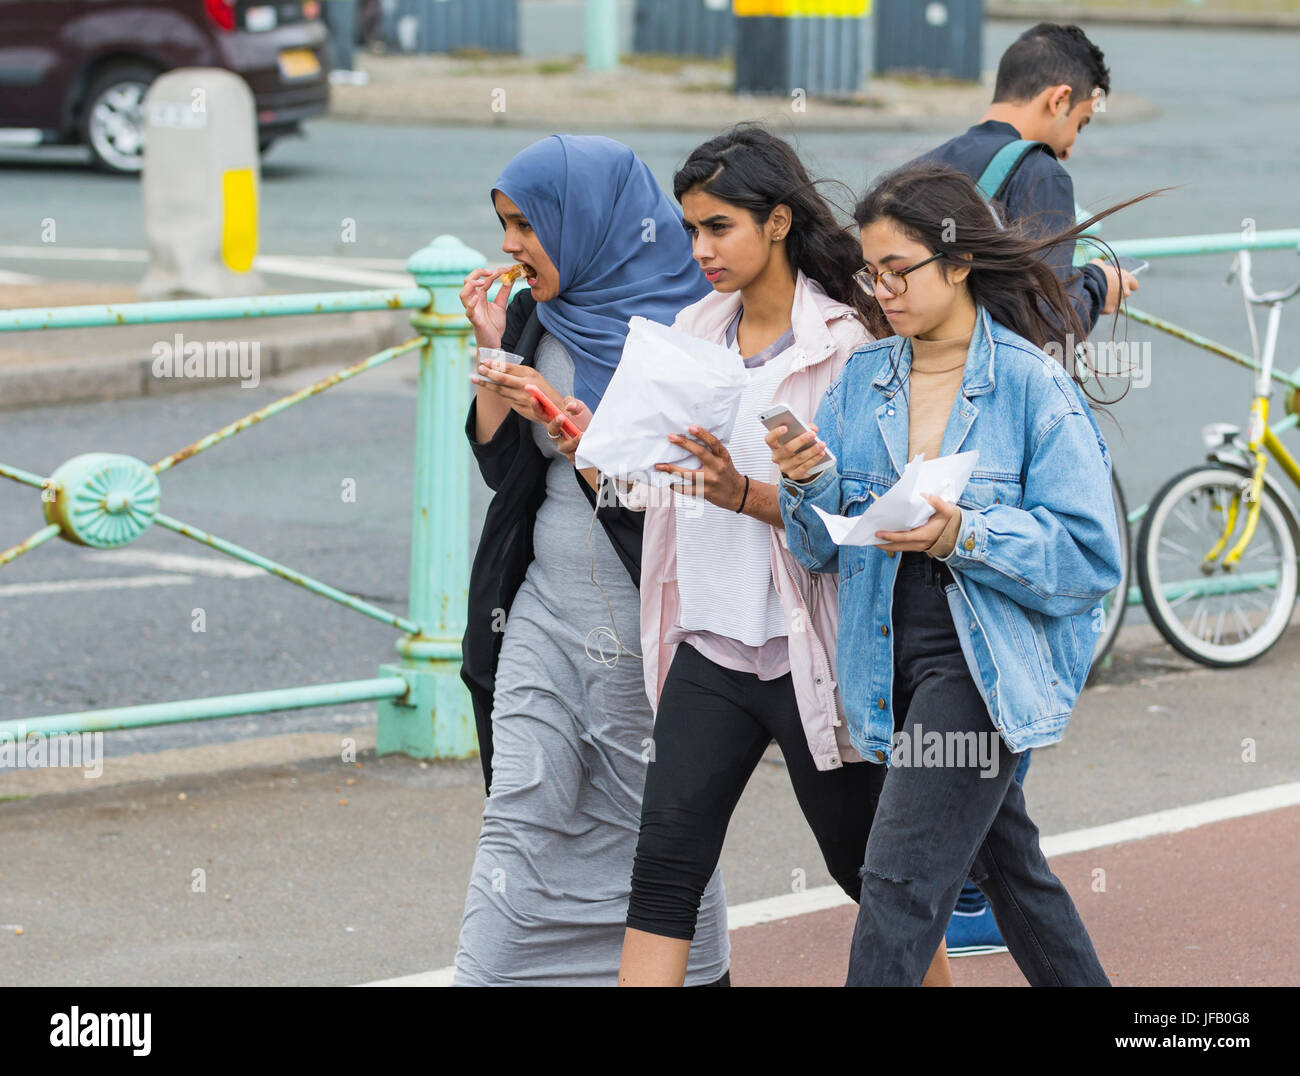 Friends walking along while eating and looking at their smartphones. - Stock Image